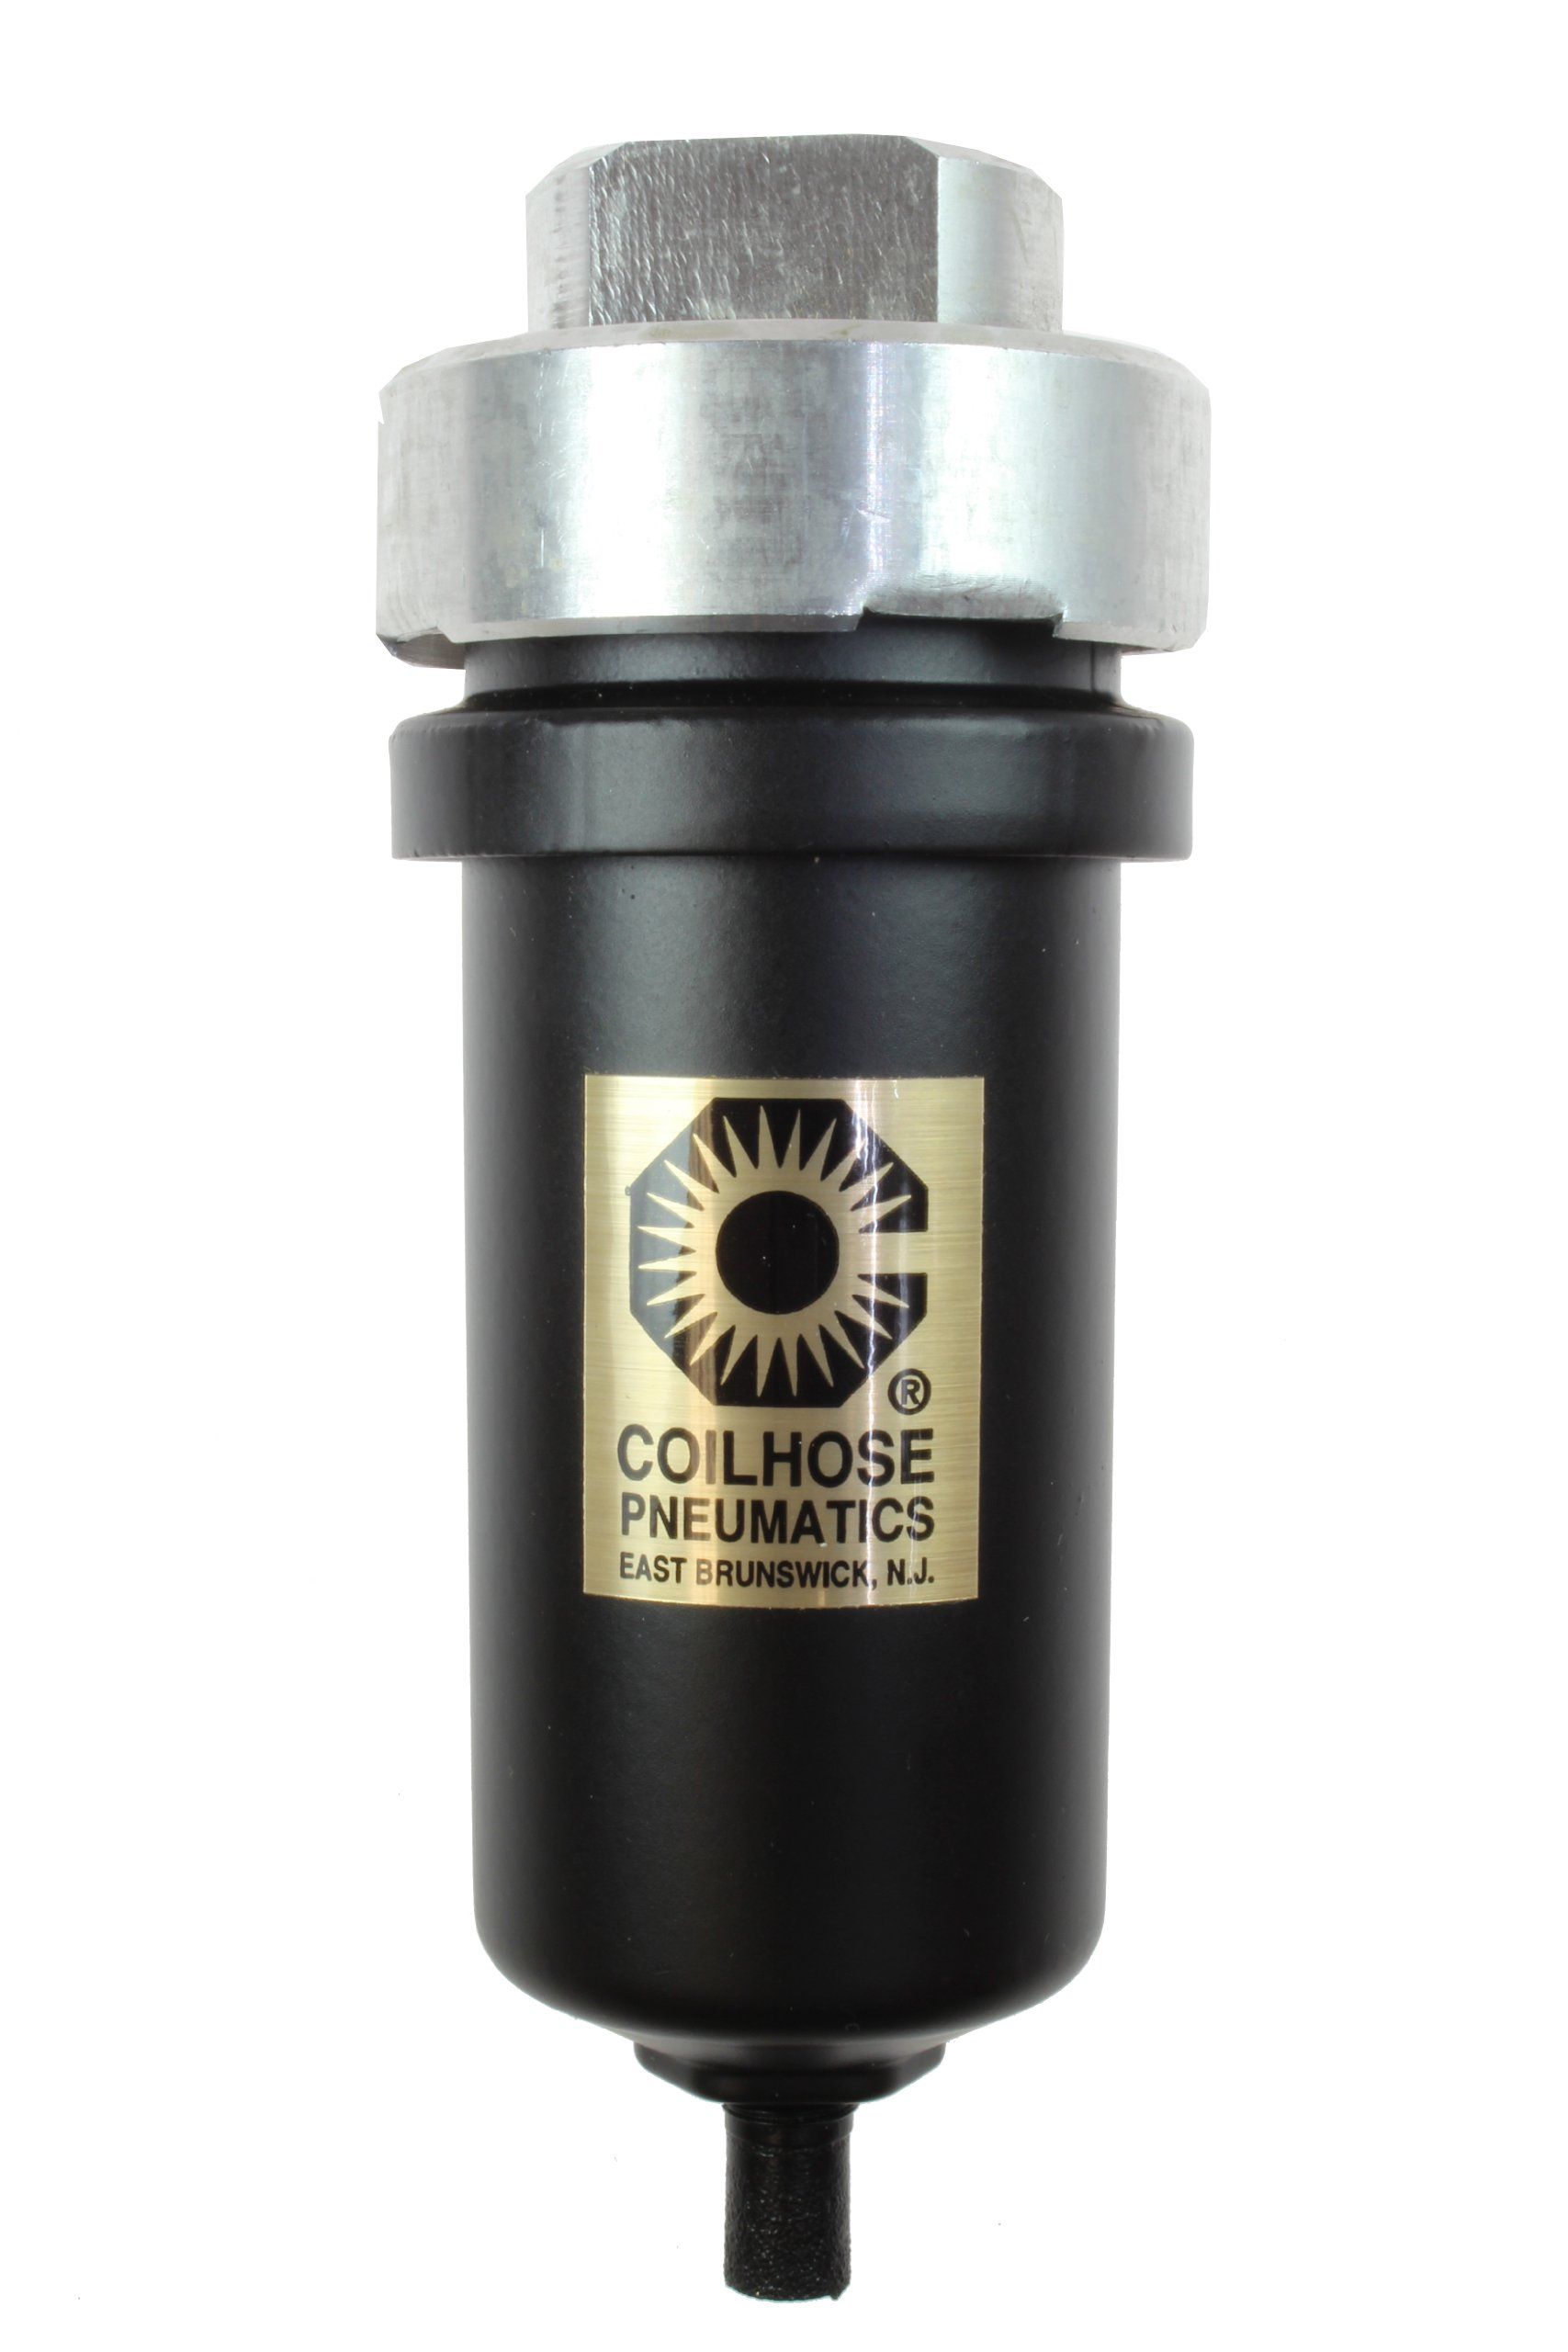 Coilhose Pneumatics 8514M Mechanical Condensate Drain with Metal Bowl, 1/2-Inch FPT by Coilhose Pneumatics